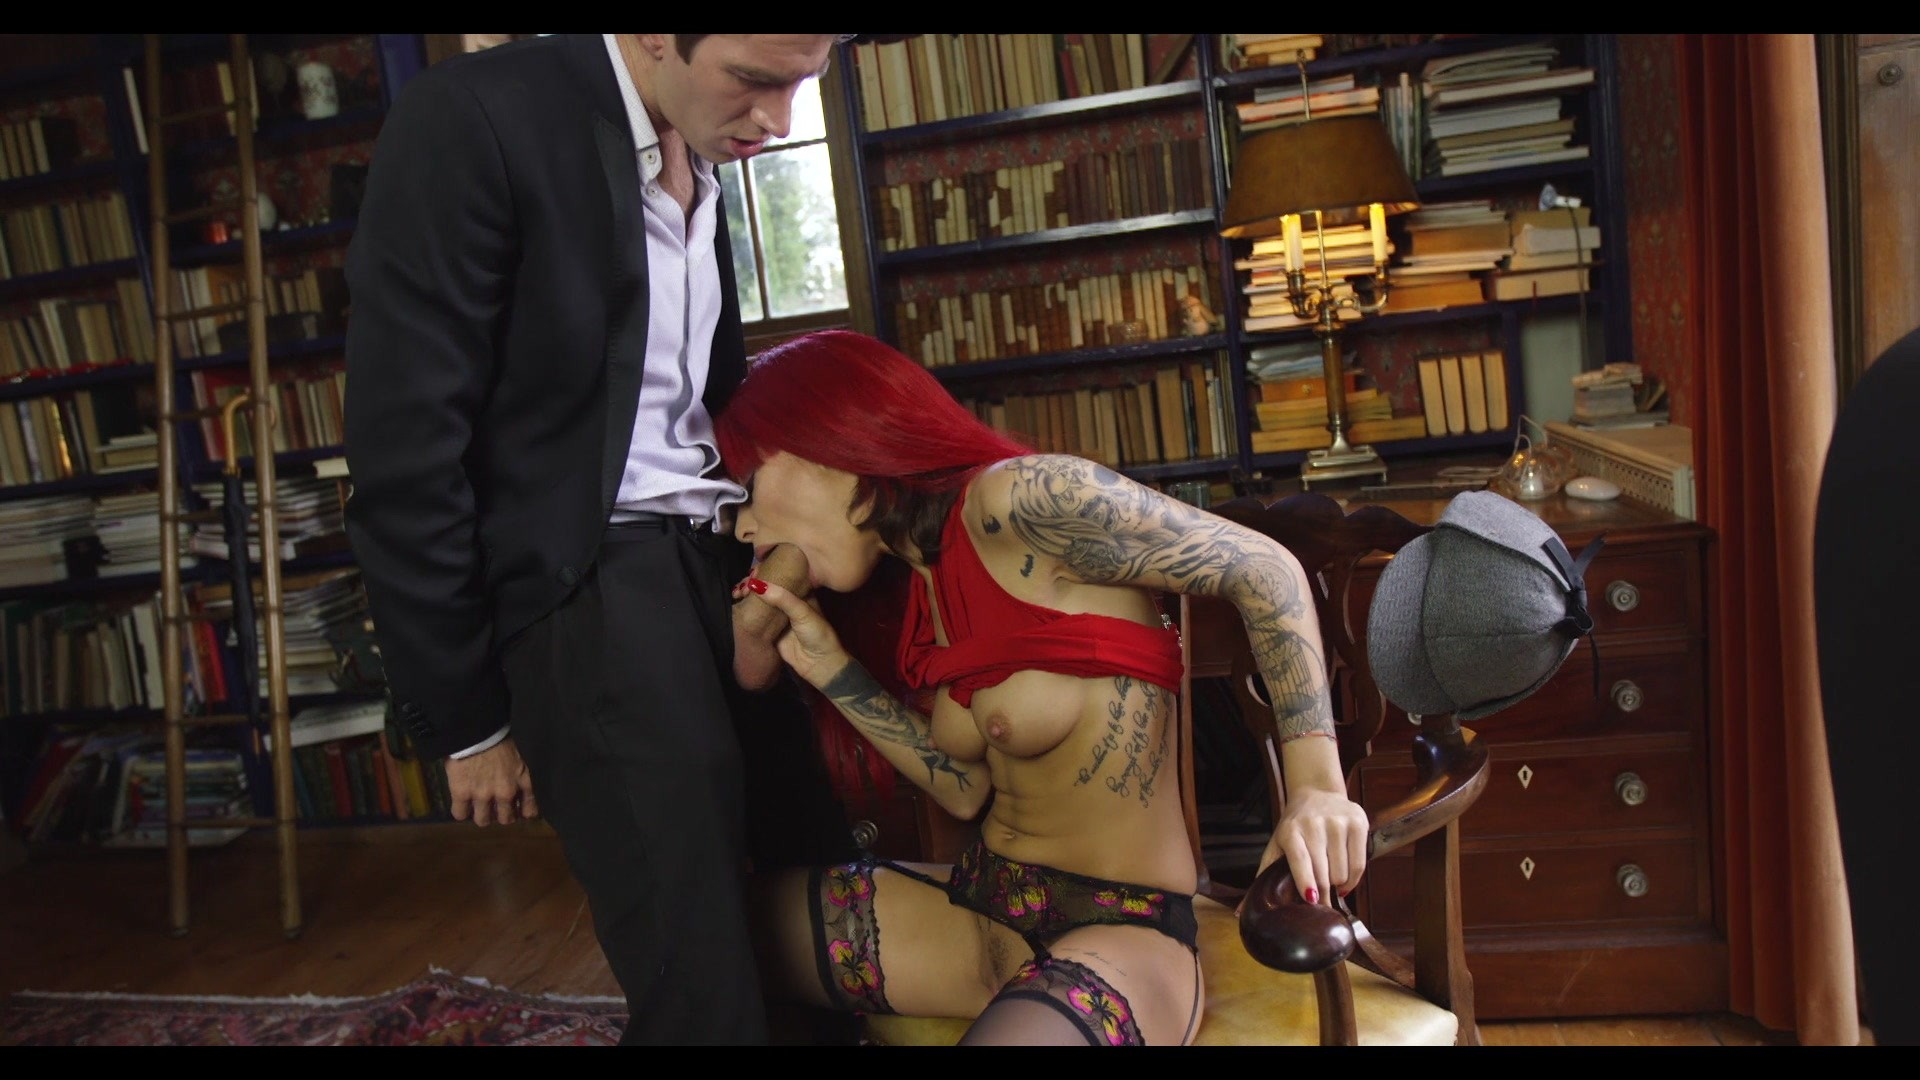 Scene with Nikita Belluci - image 11 out of 20